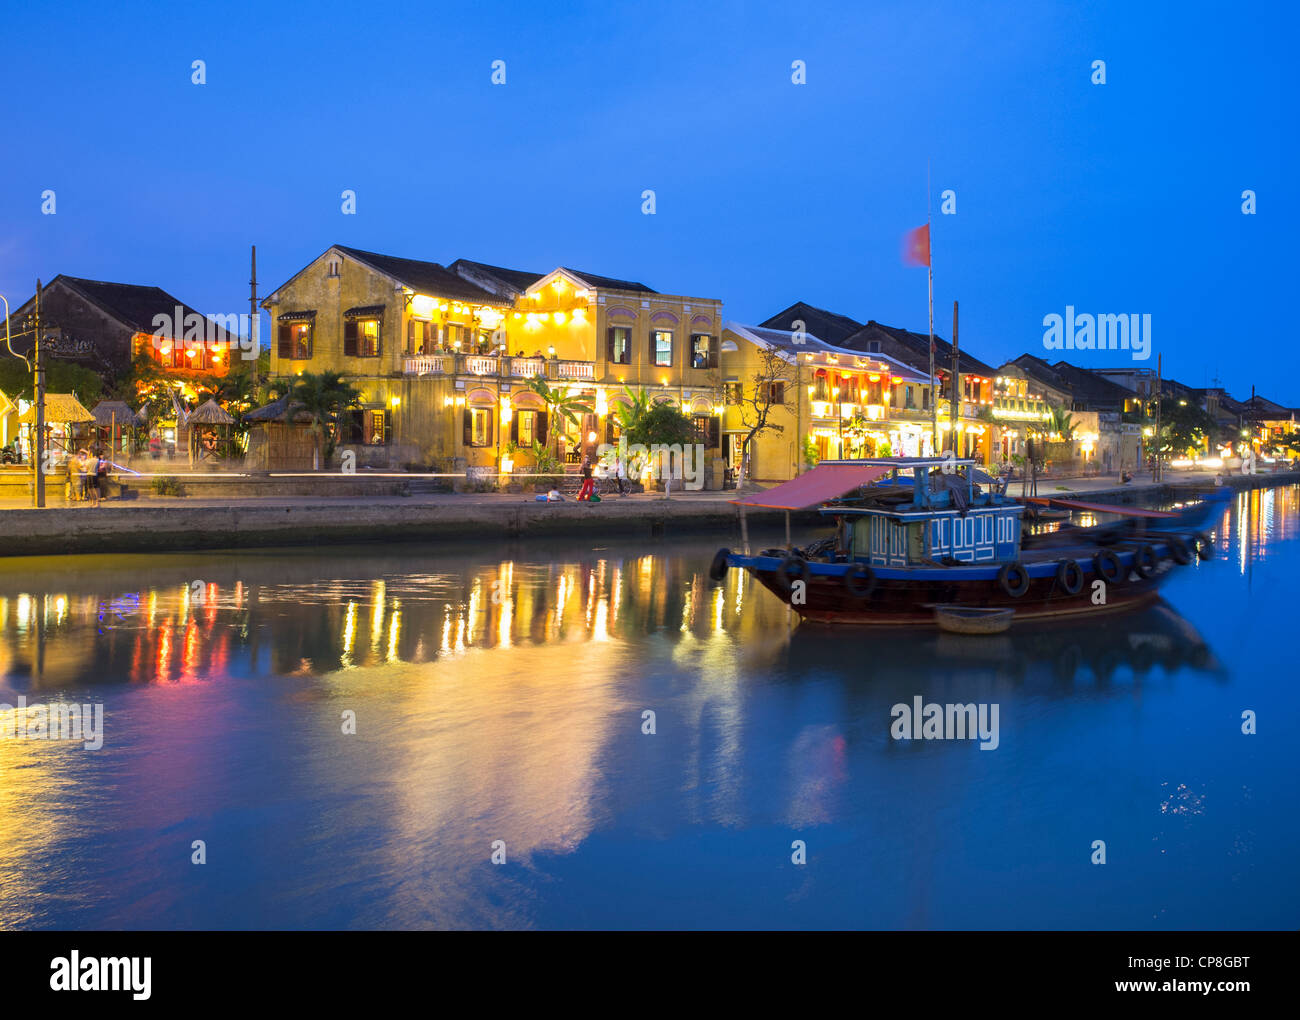 Evening view of historic old town of Hoian a UNESCO World Heritage site in Vietnam Stock Photo